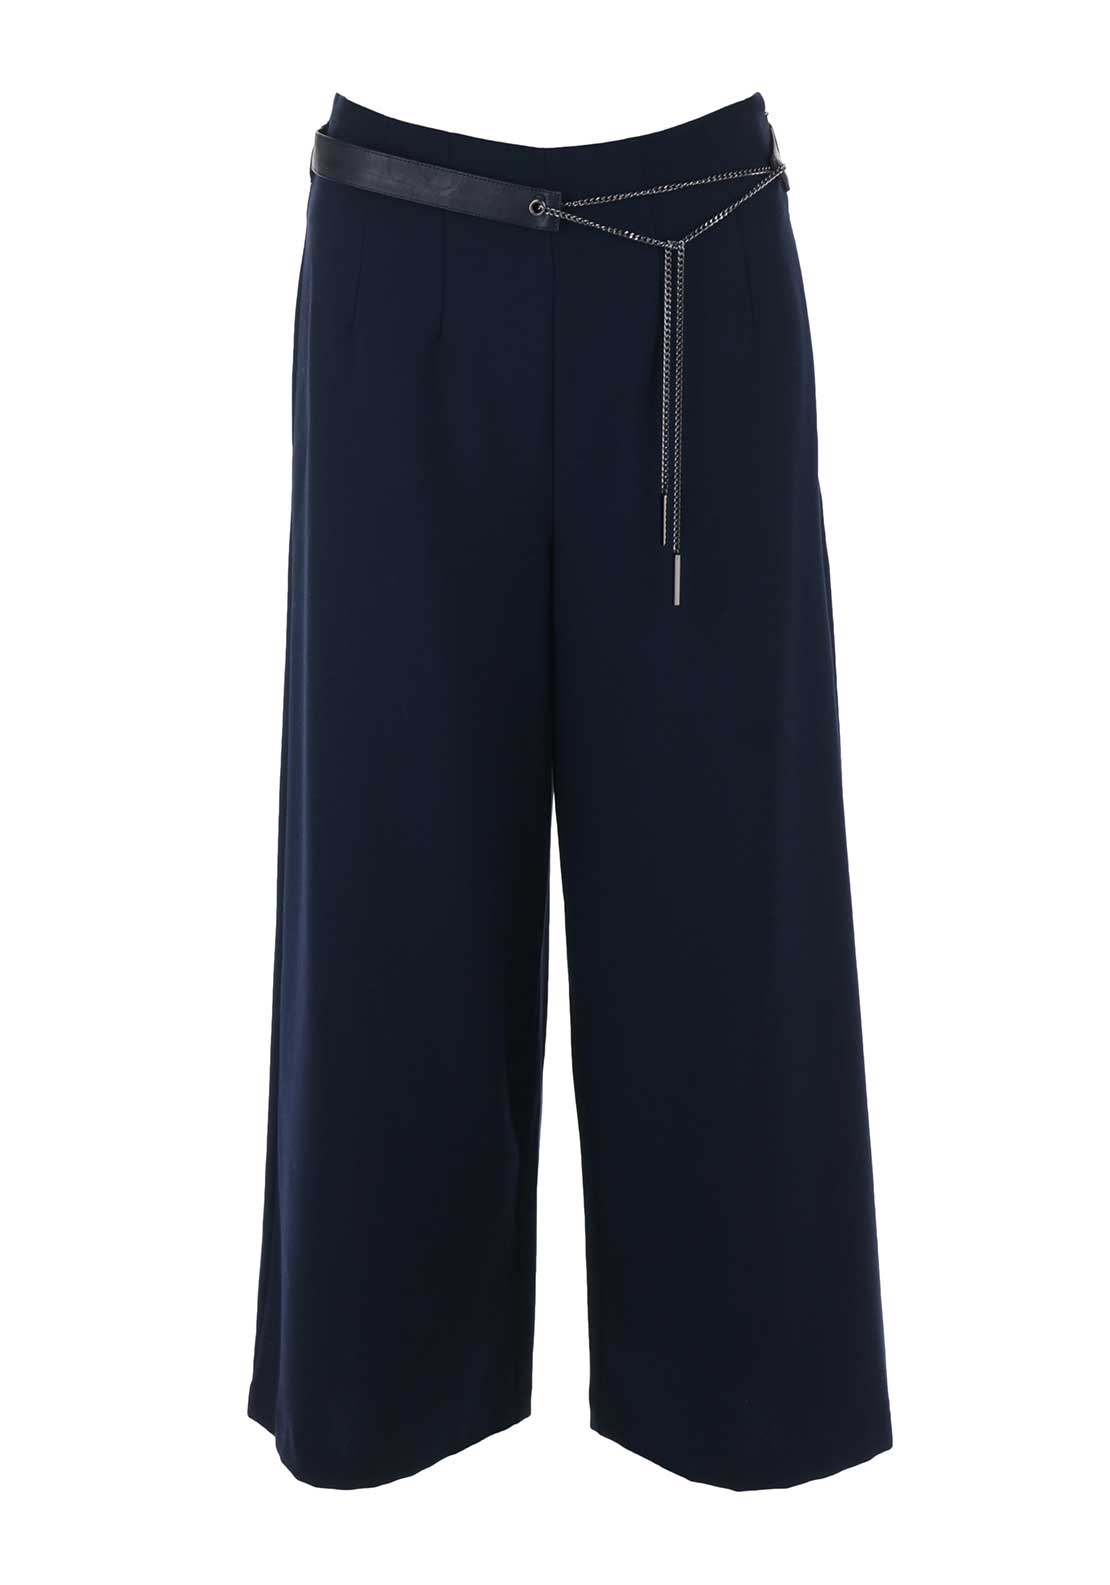 Silvan Heach Belted Culotte Trousers, Navy